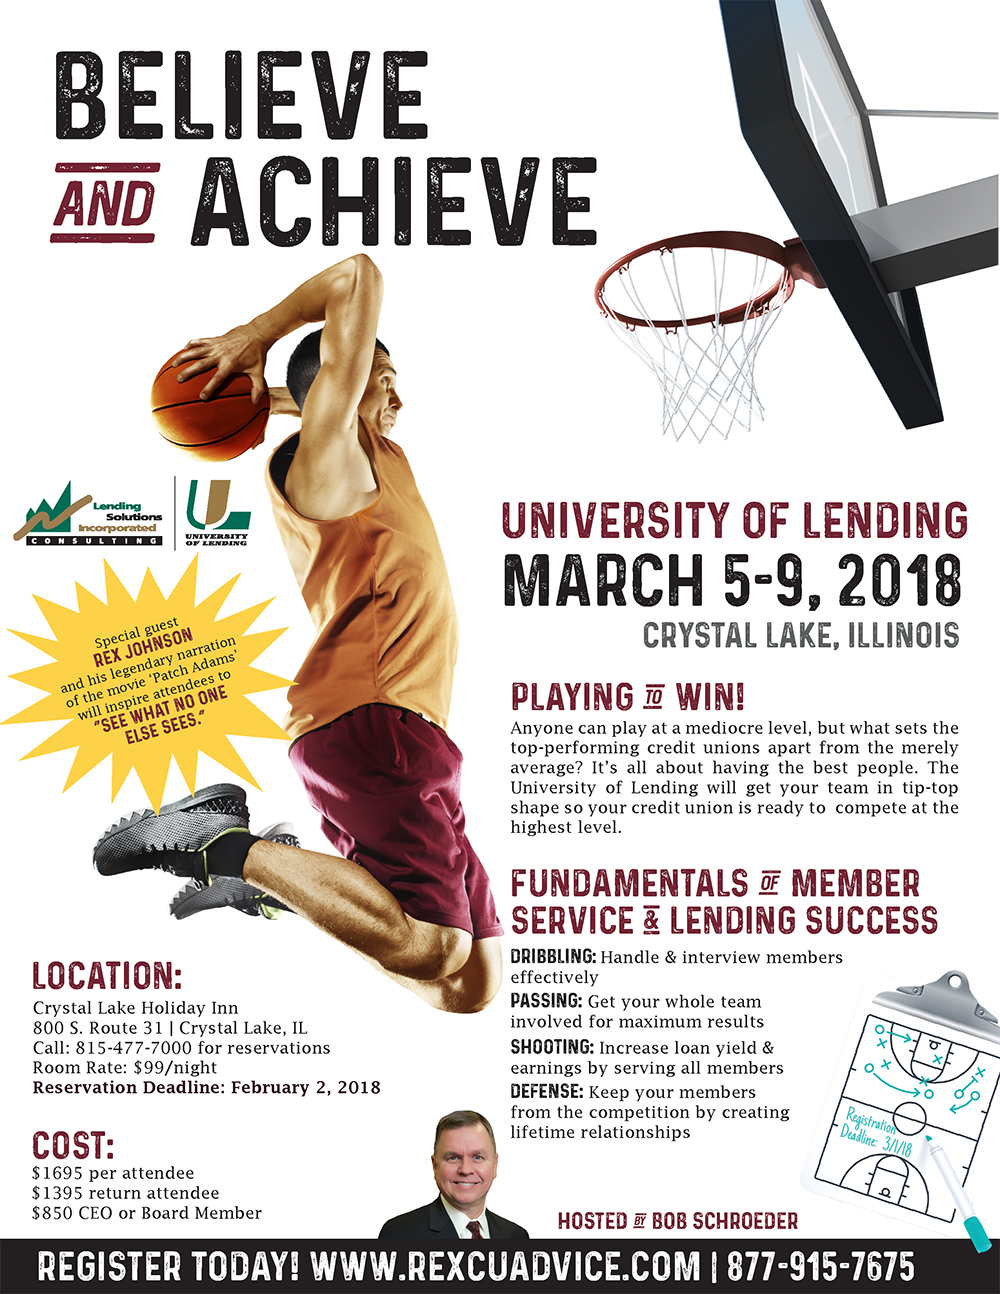 5-Day University of Lending - Crystal Lake, IL - March 5-9, 2018